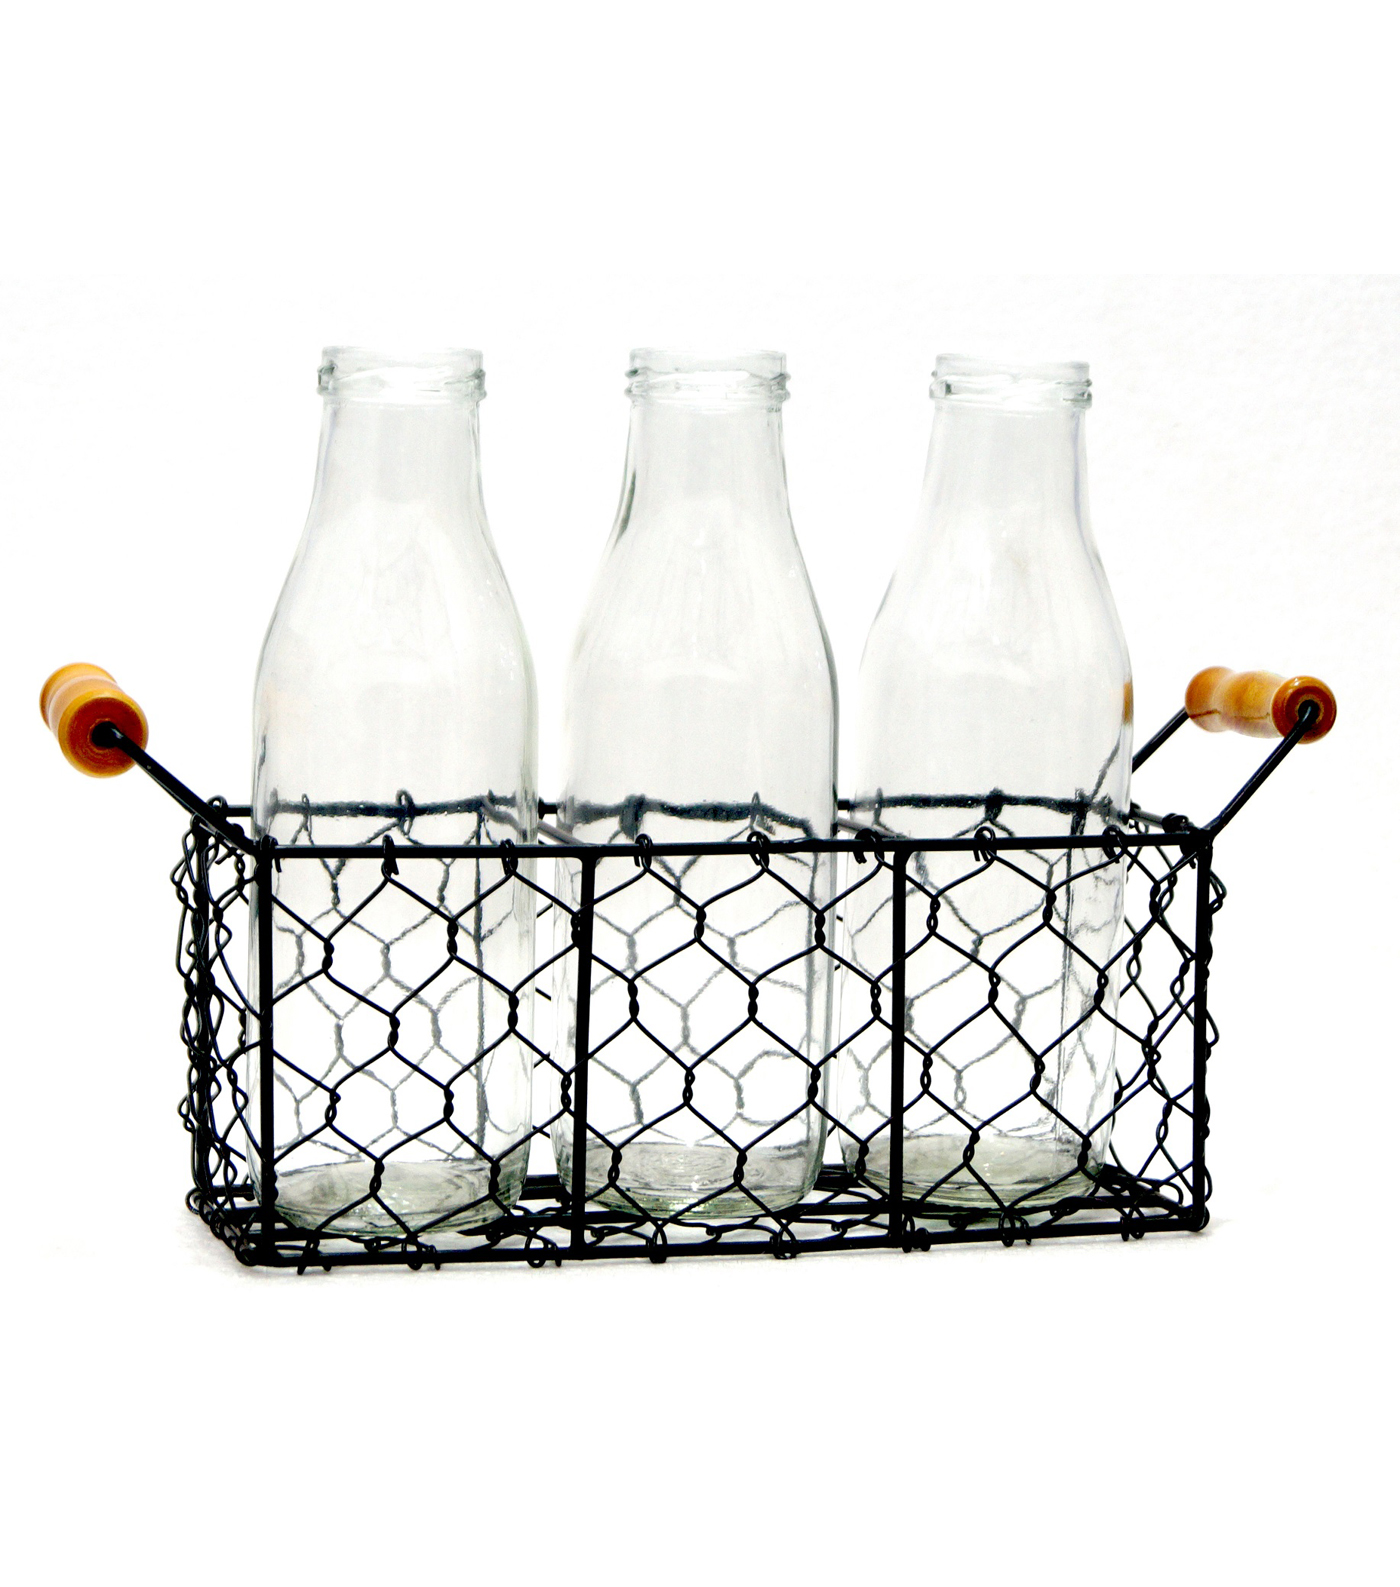 Hudson 43 Farm Chicken Wire Basket with Three Bottles